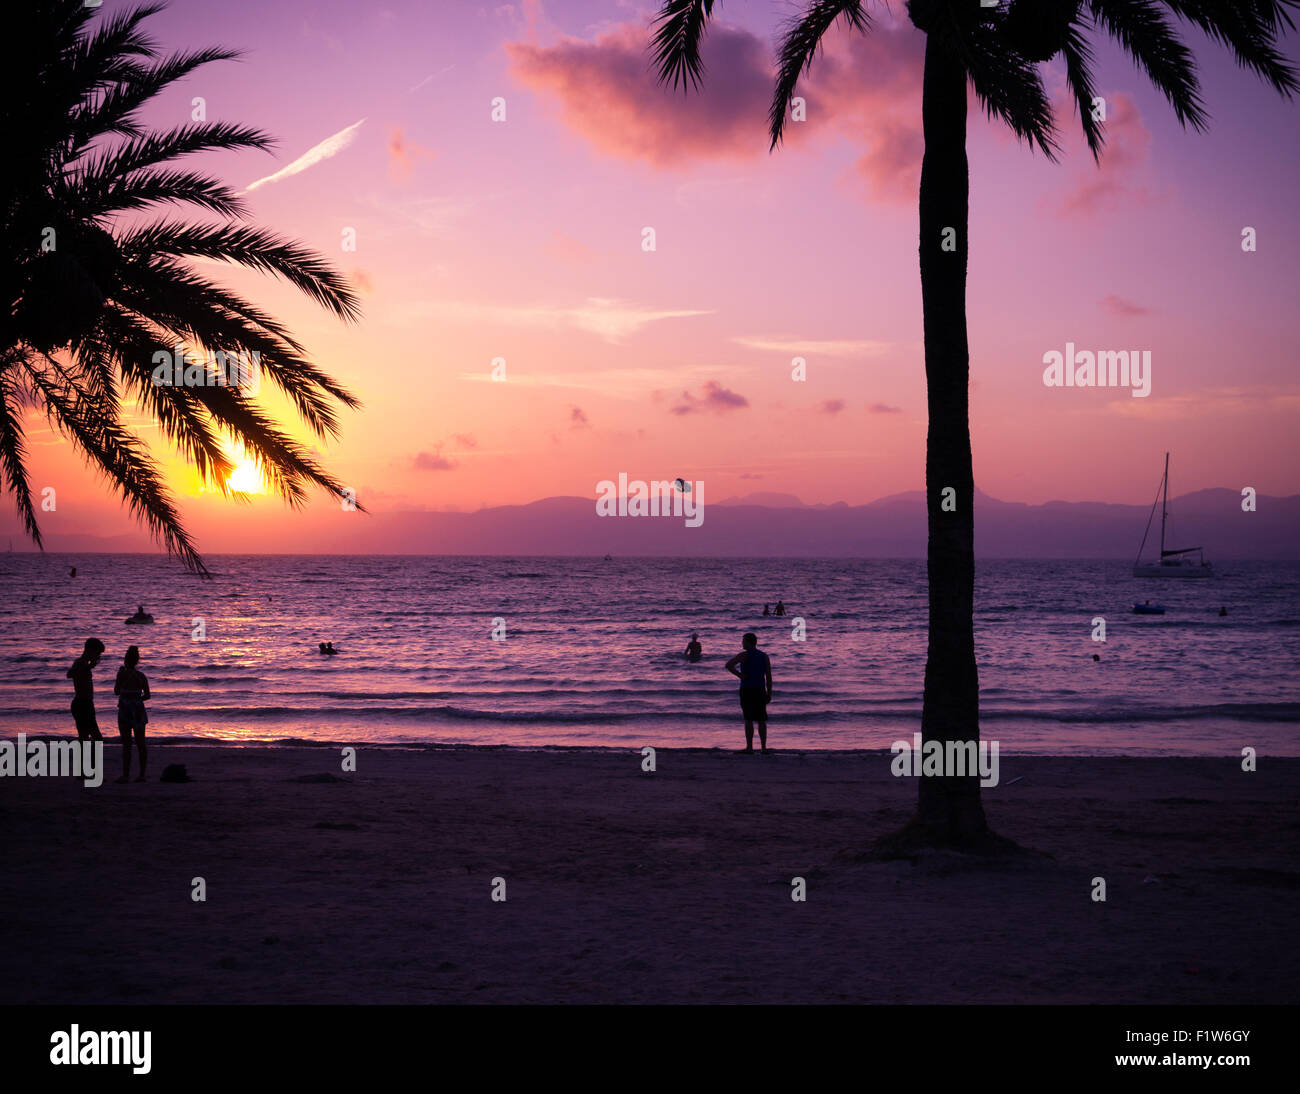 sunset-over-the-bay-of-palma-as-seen-fro